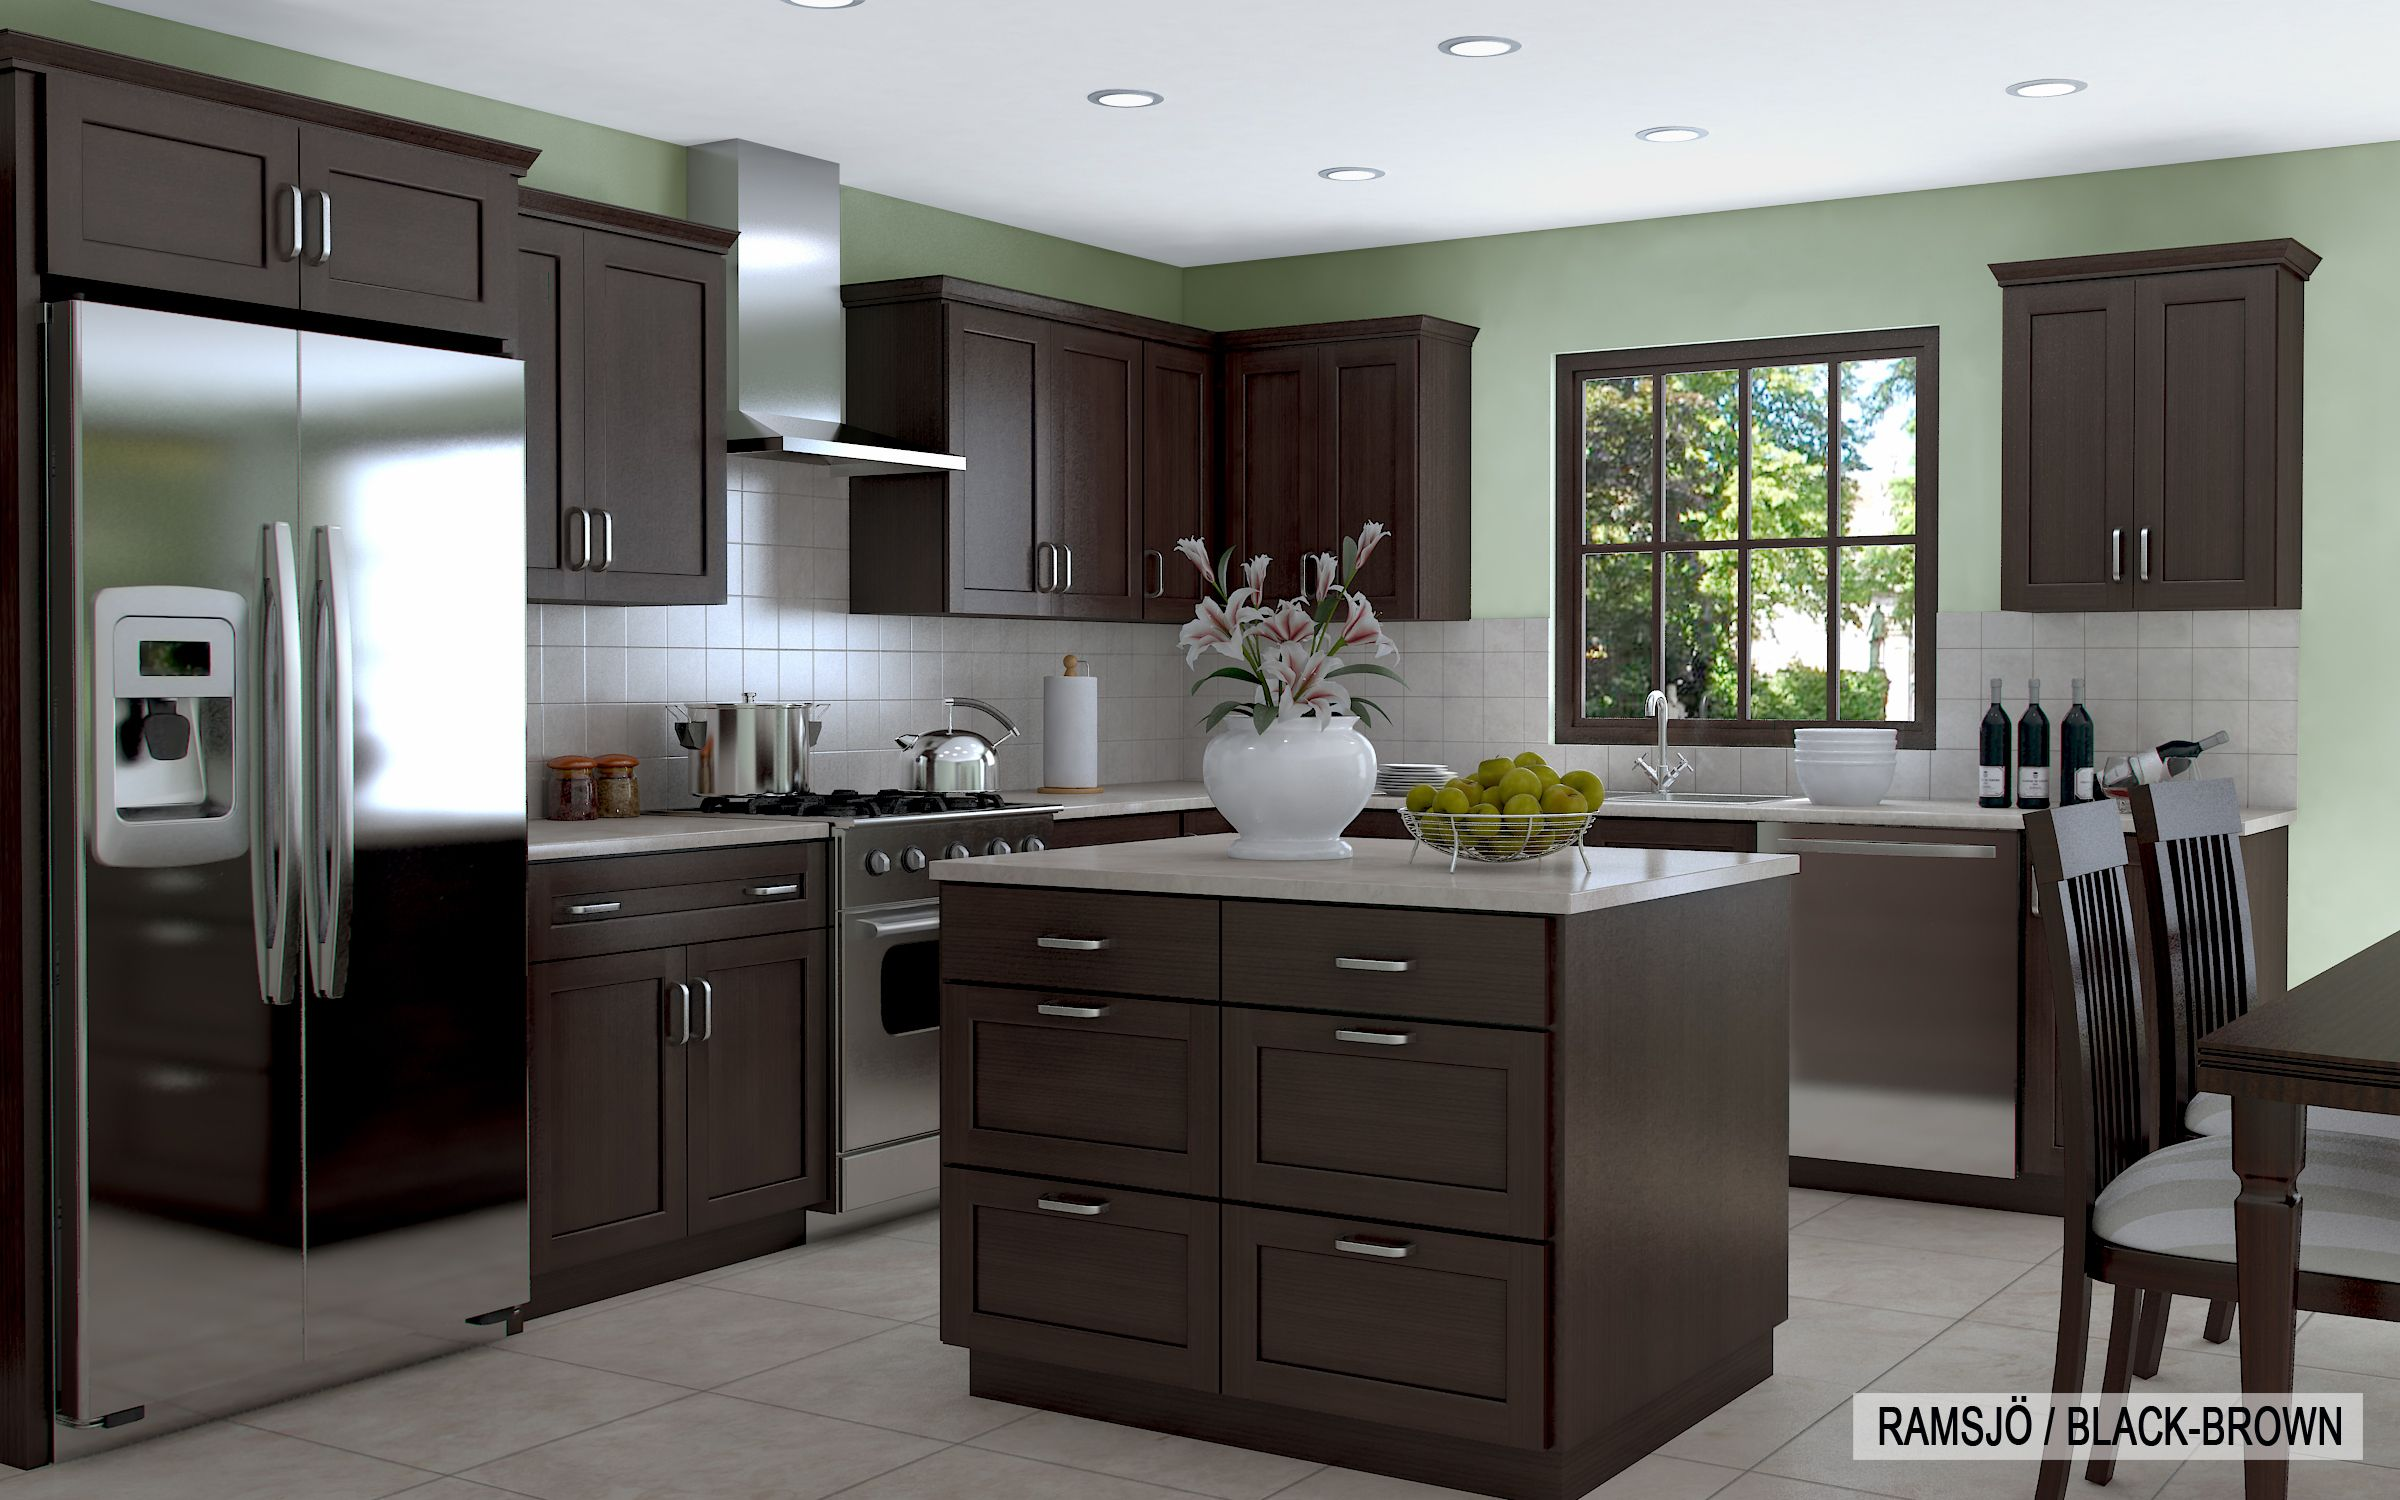 kitchen remodeling wonderful ikea kitchen with grey granite countertop and dark brown cabinets and drawers also - Ikea Black Kitchen Cabinets